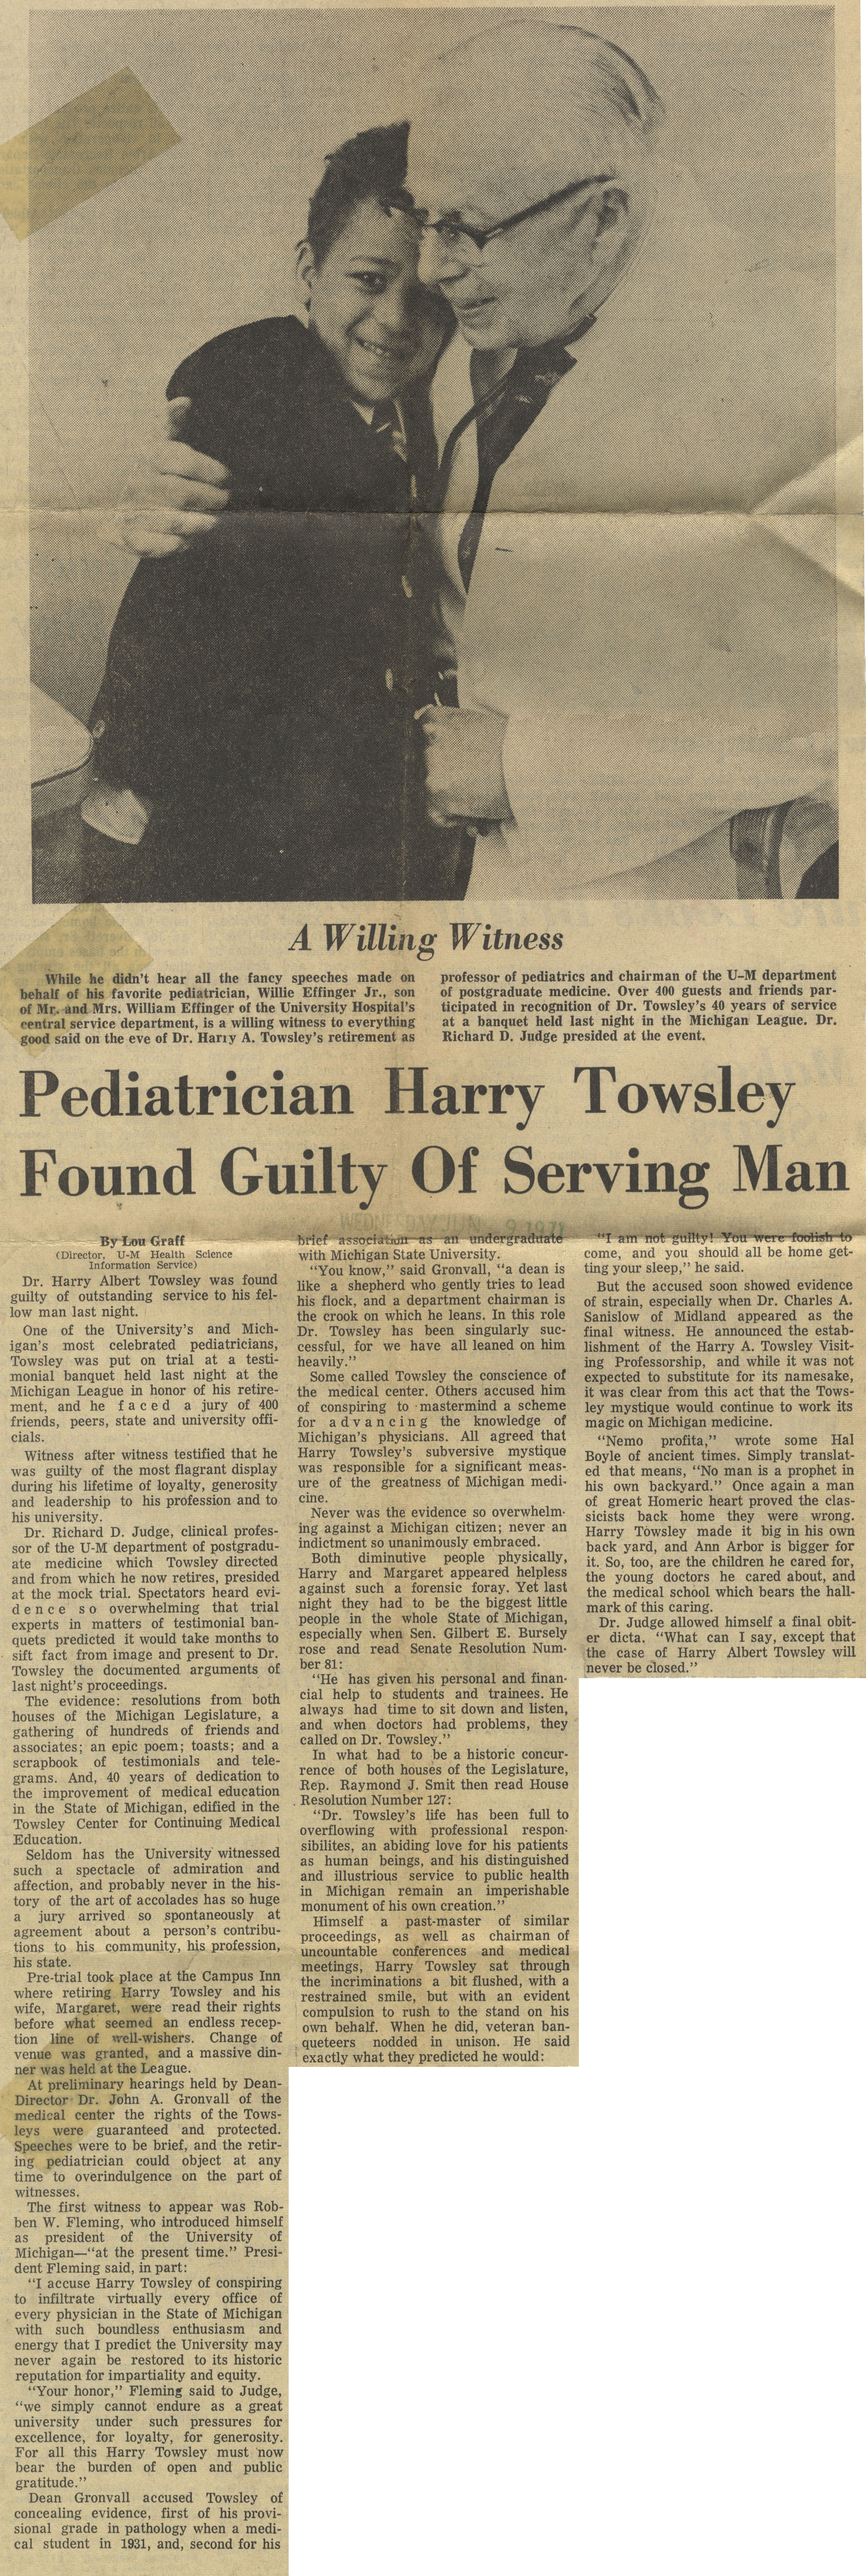 Pediatrician Harry Towsley Found Guilty Of Serving Man image